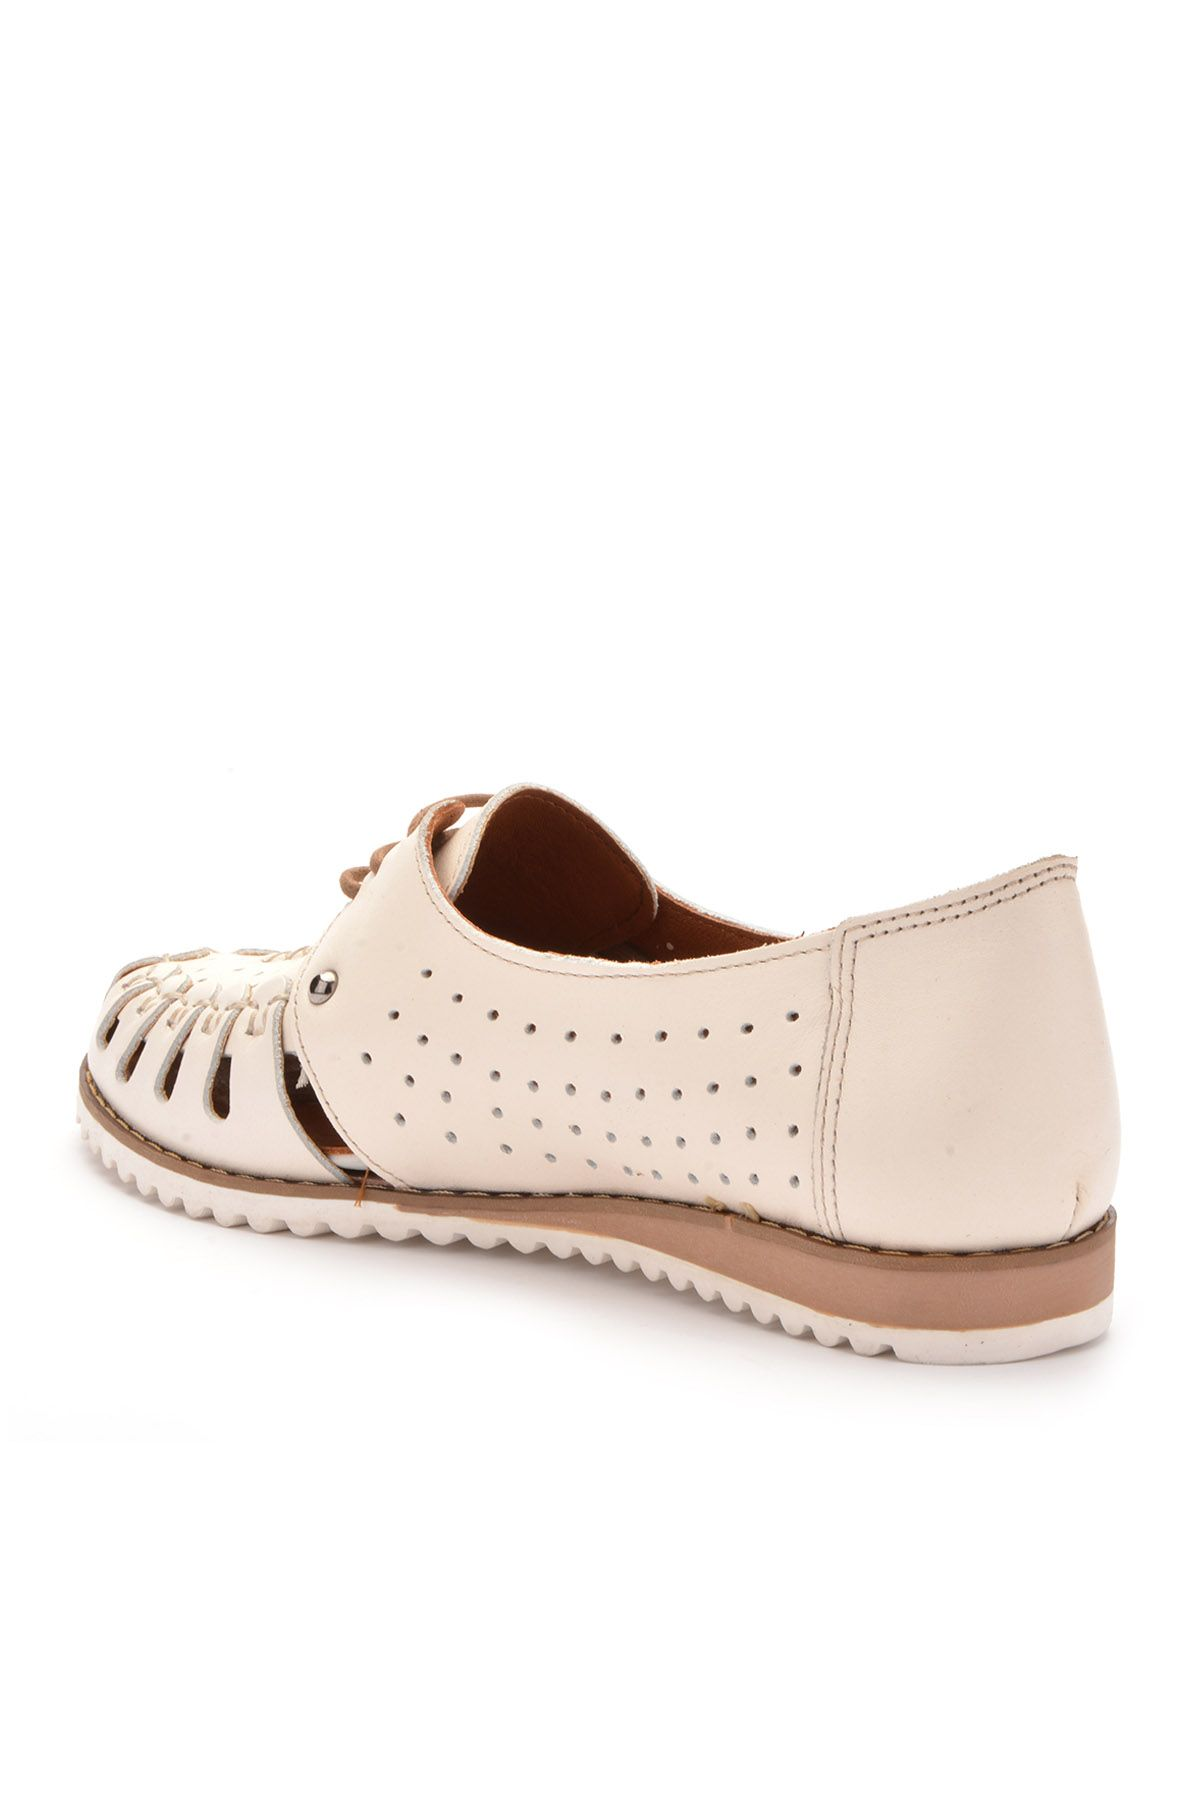 Pegia Lace Women Shoes From Genuine Leather White